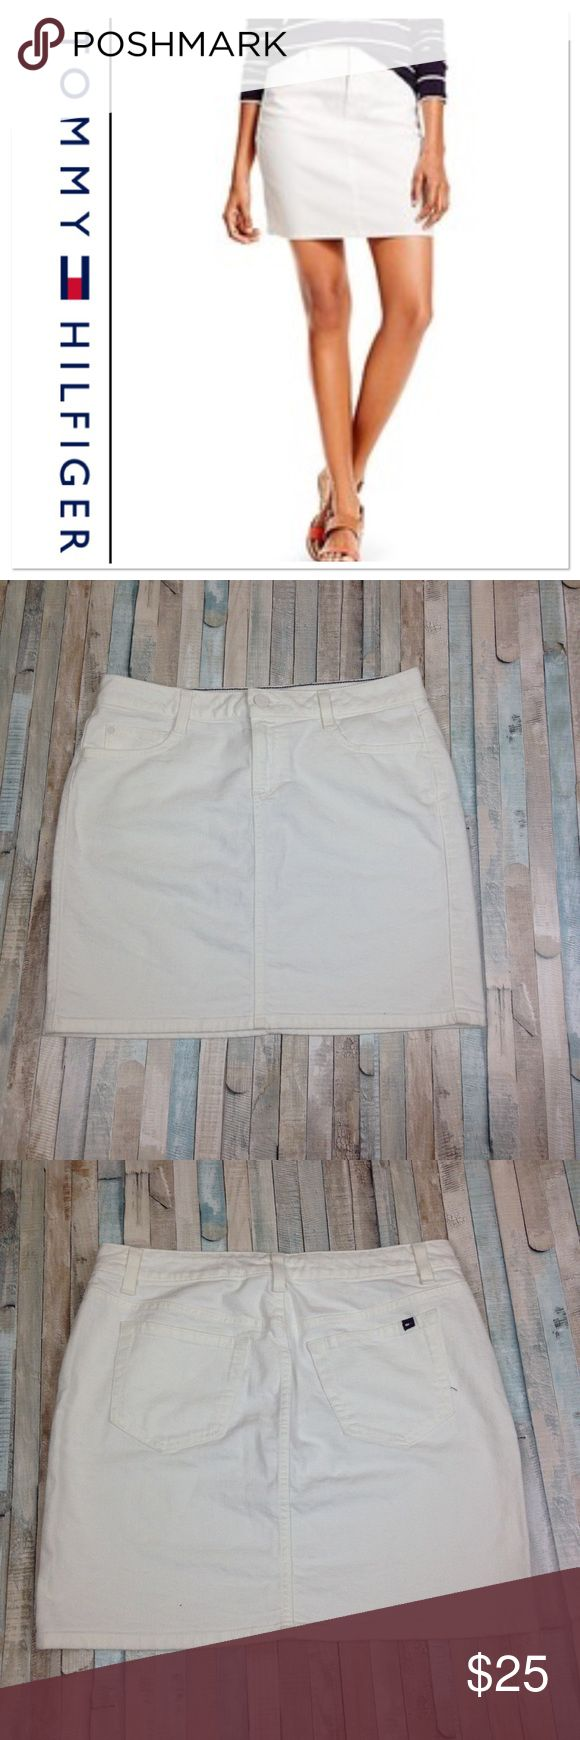 TOMMY HILFIGER WHITE DENIM MINI SKIRT Great condition!! Super trendy right now, only worn a couple of times. Has four functioning pockets and loops for a belt. Refer to picture for measurements. Size 6. Have any questions? I bet I have answers so feel free to ask!!! Tommy Hilfiger Skirts Mini